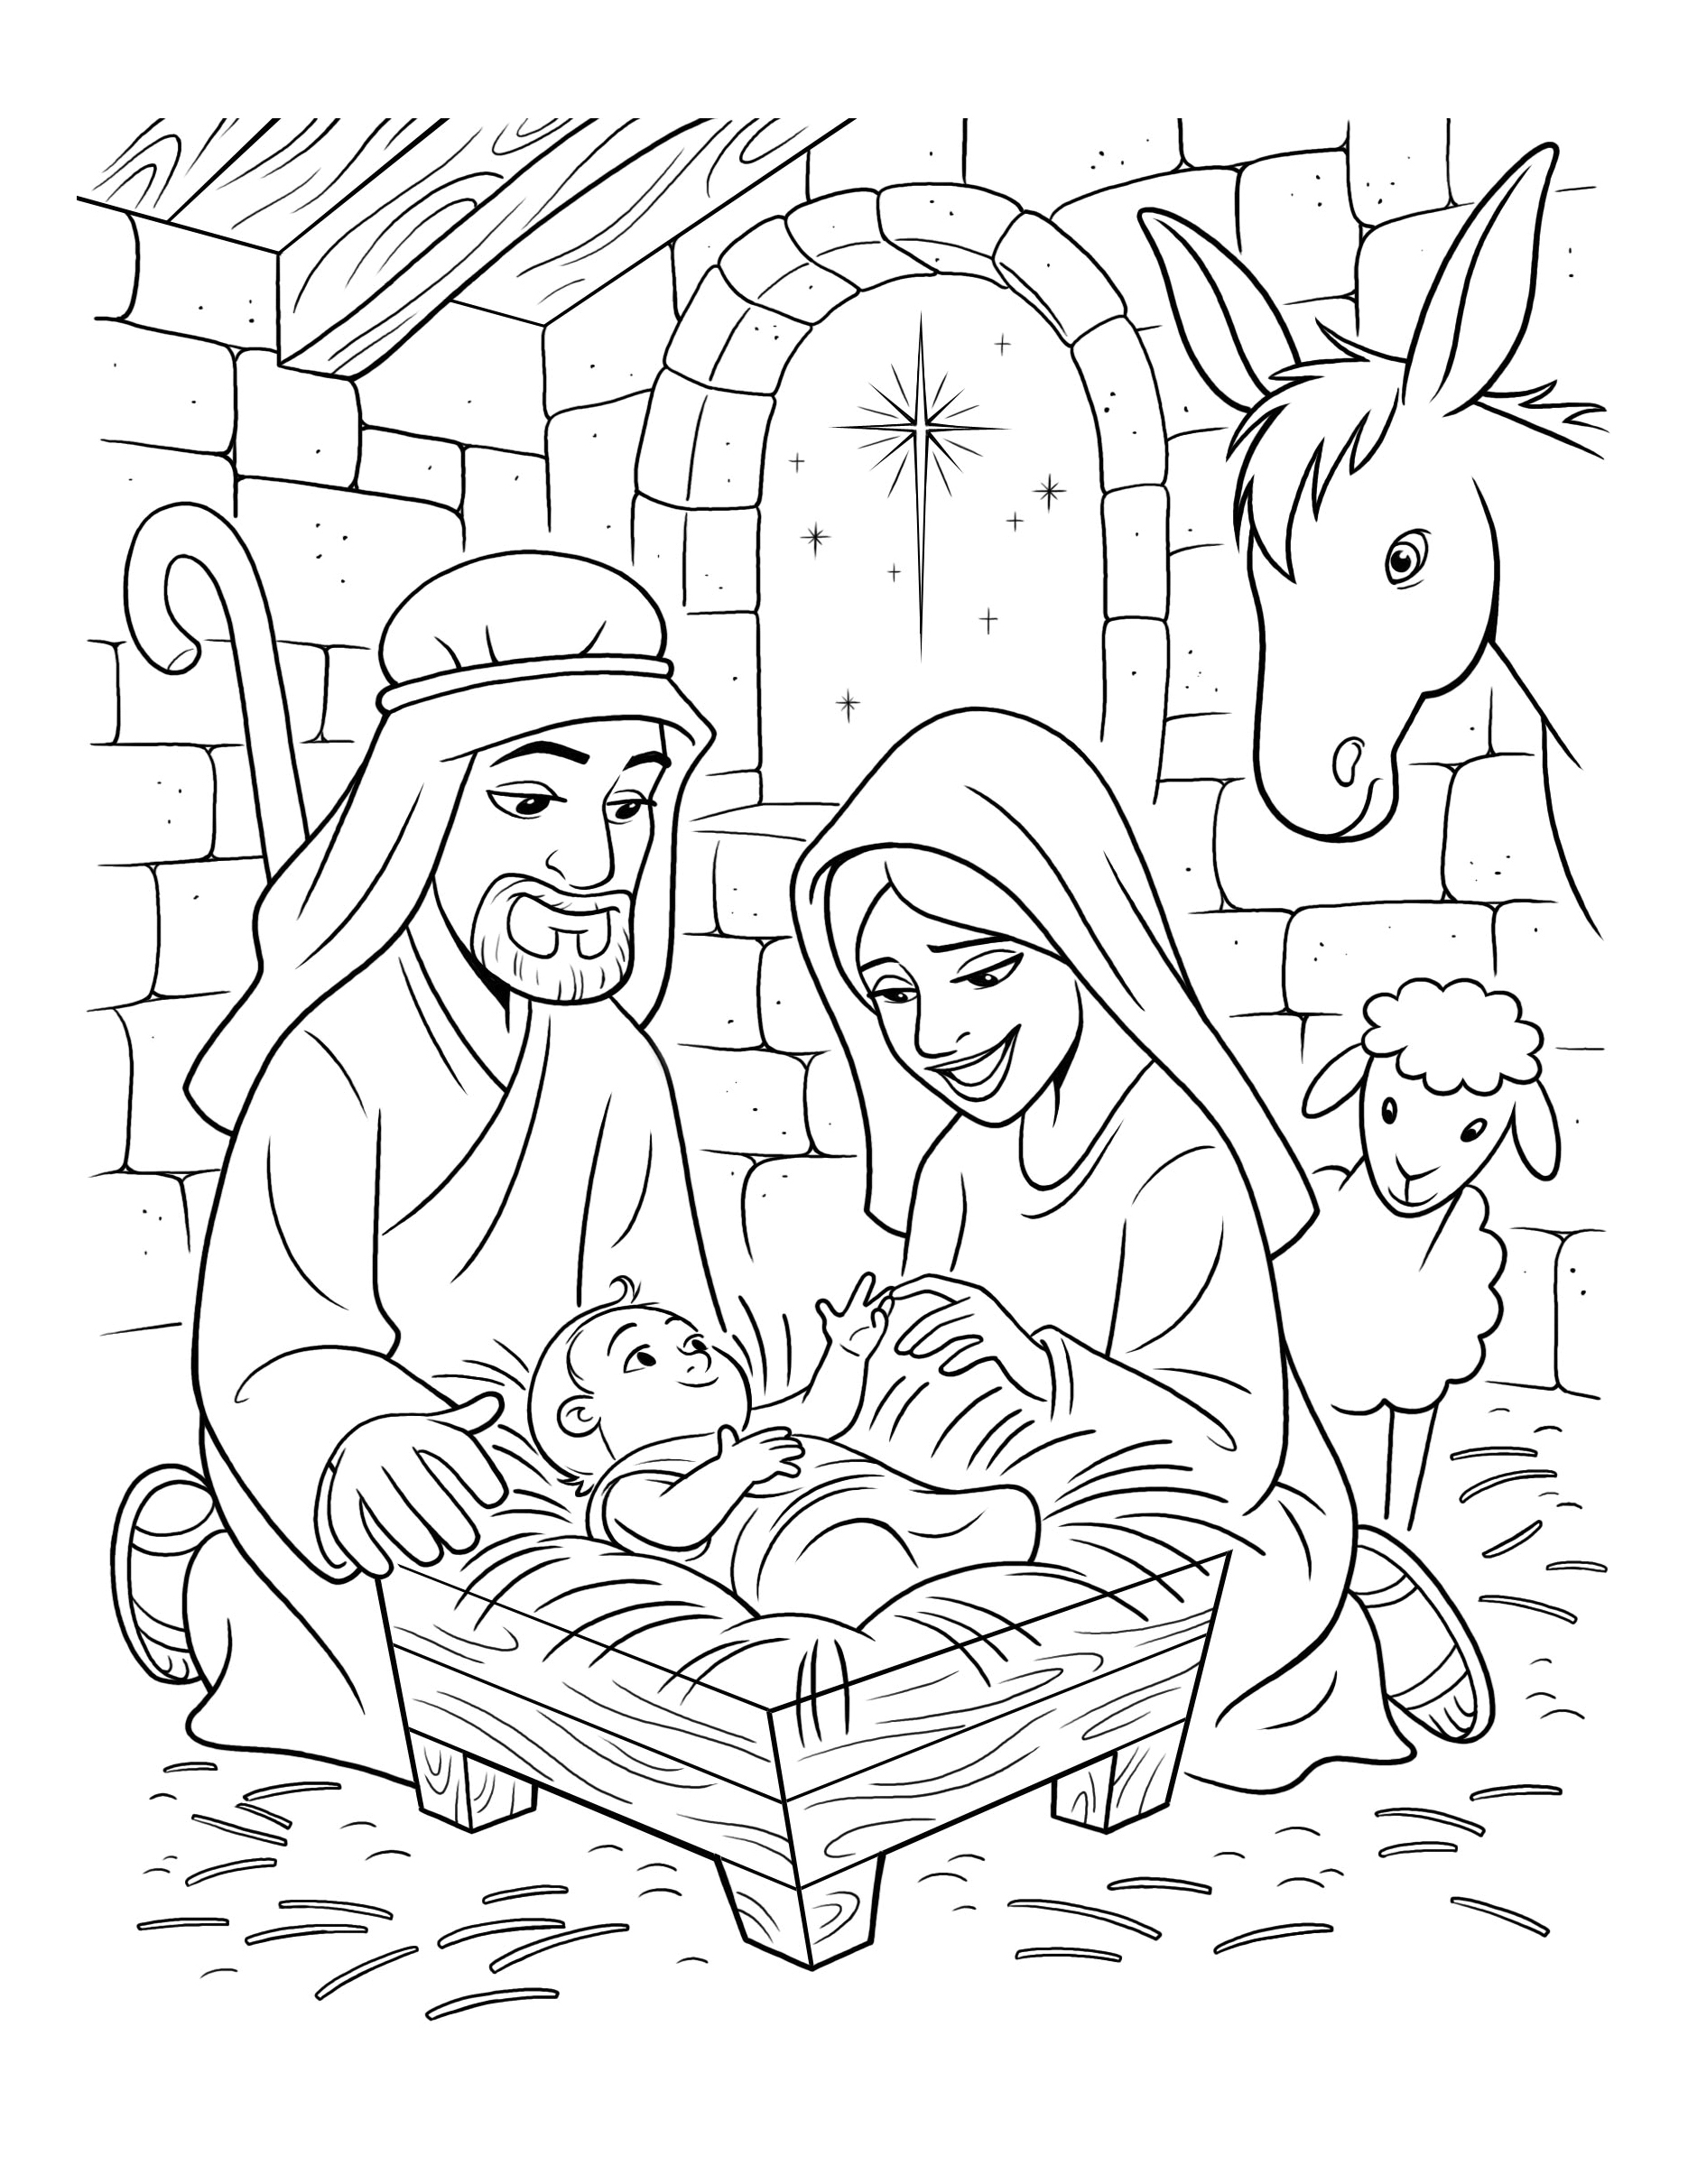 Baby Jesus Coloring Pages : jesus, coloring, pages, Birth, Christ